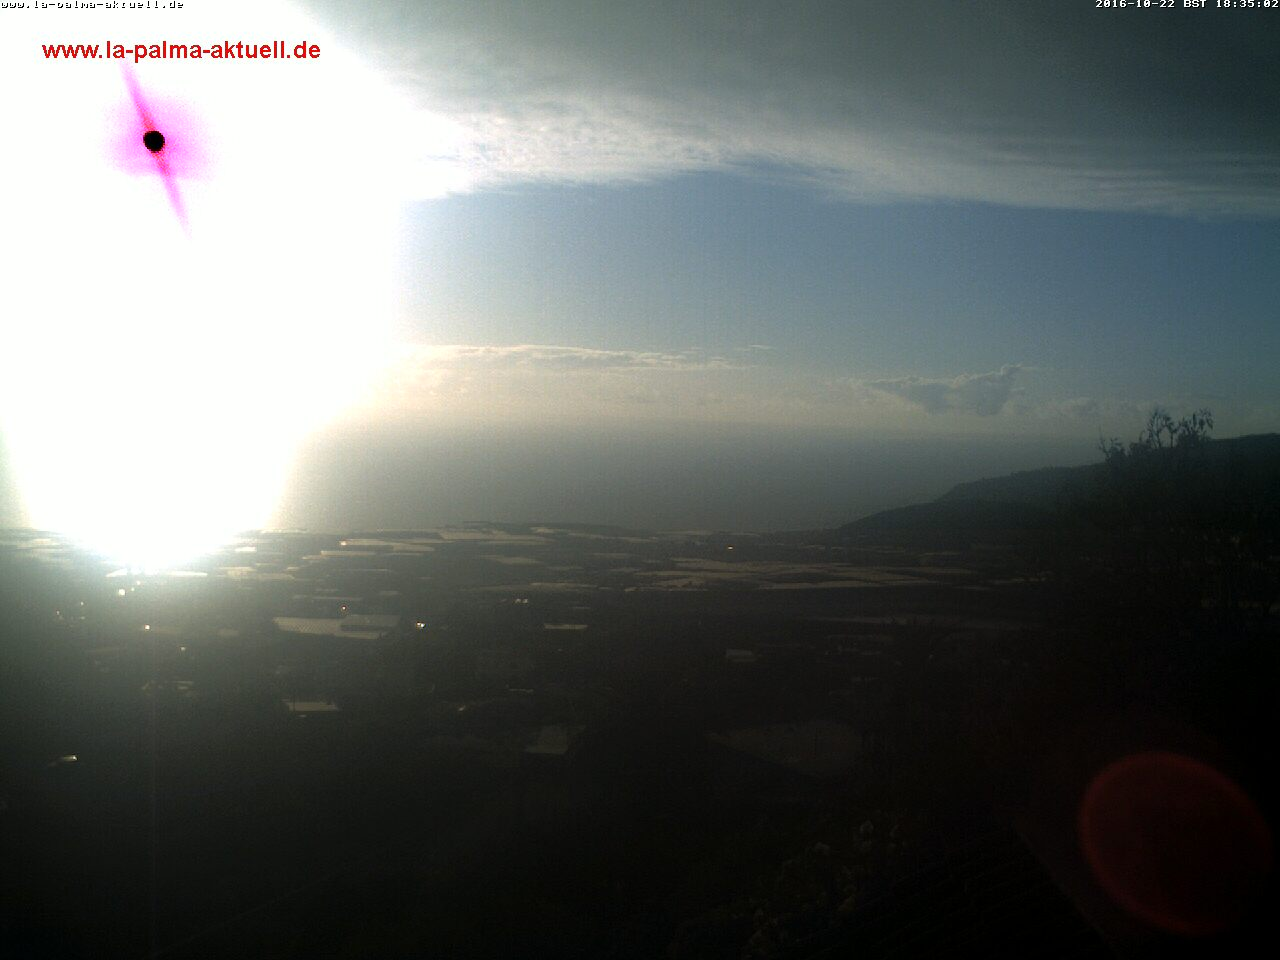 Webcam in El Paso over het Aridane dal op La Palma.